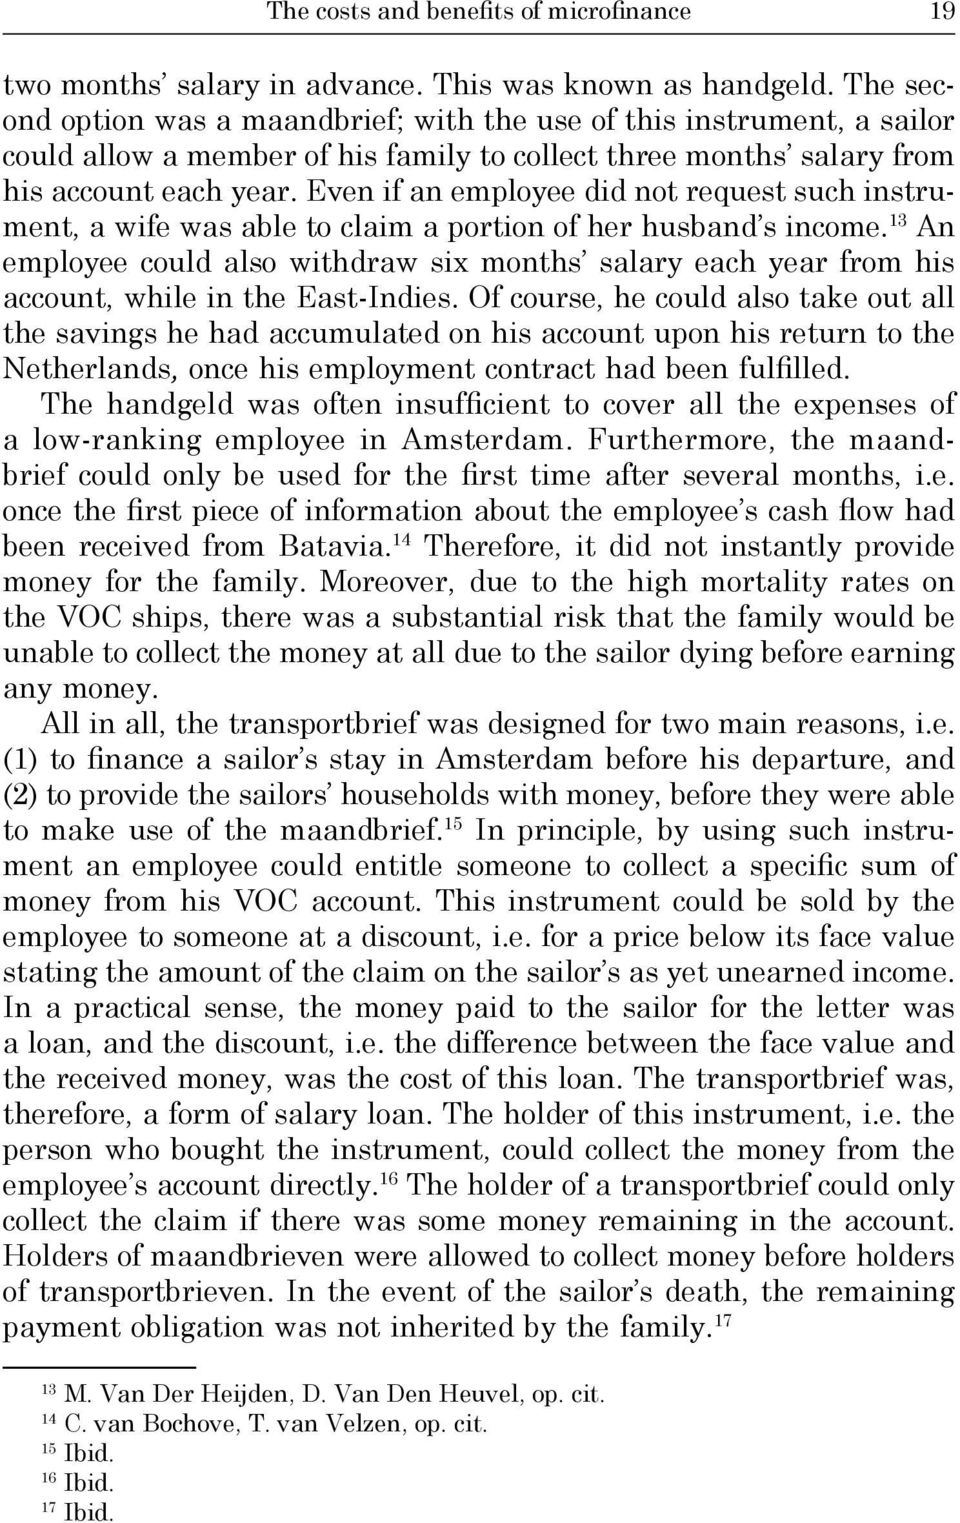 Even if an employee did not request such instrument, a wife was able to claim a portion of her husband s income.